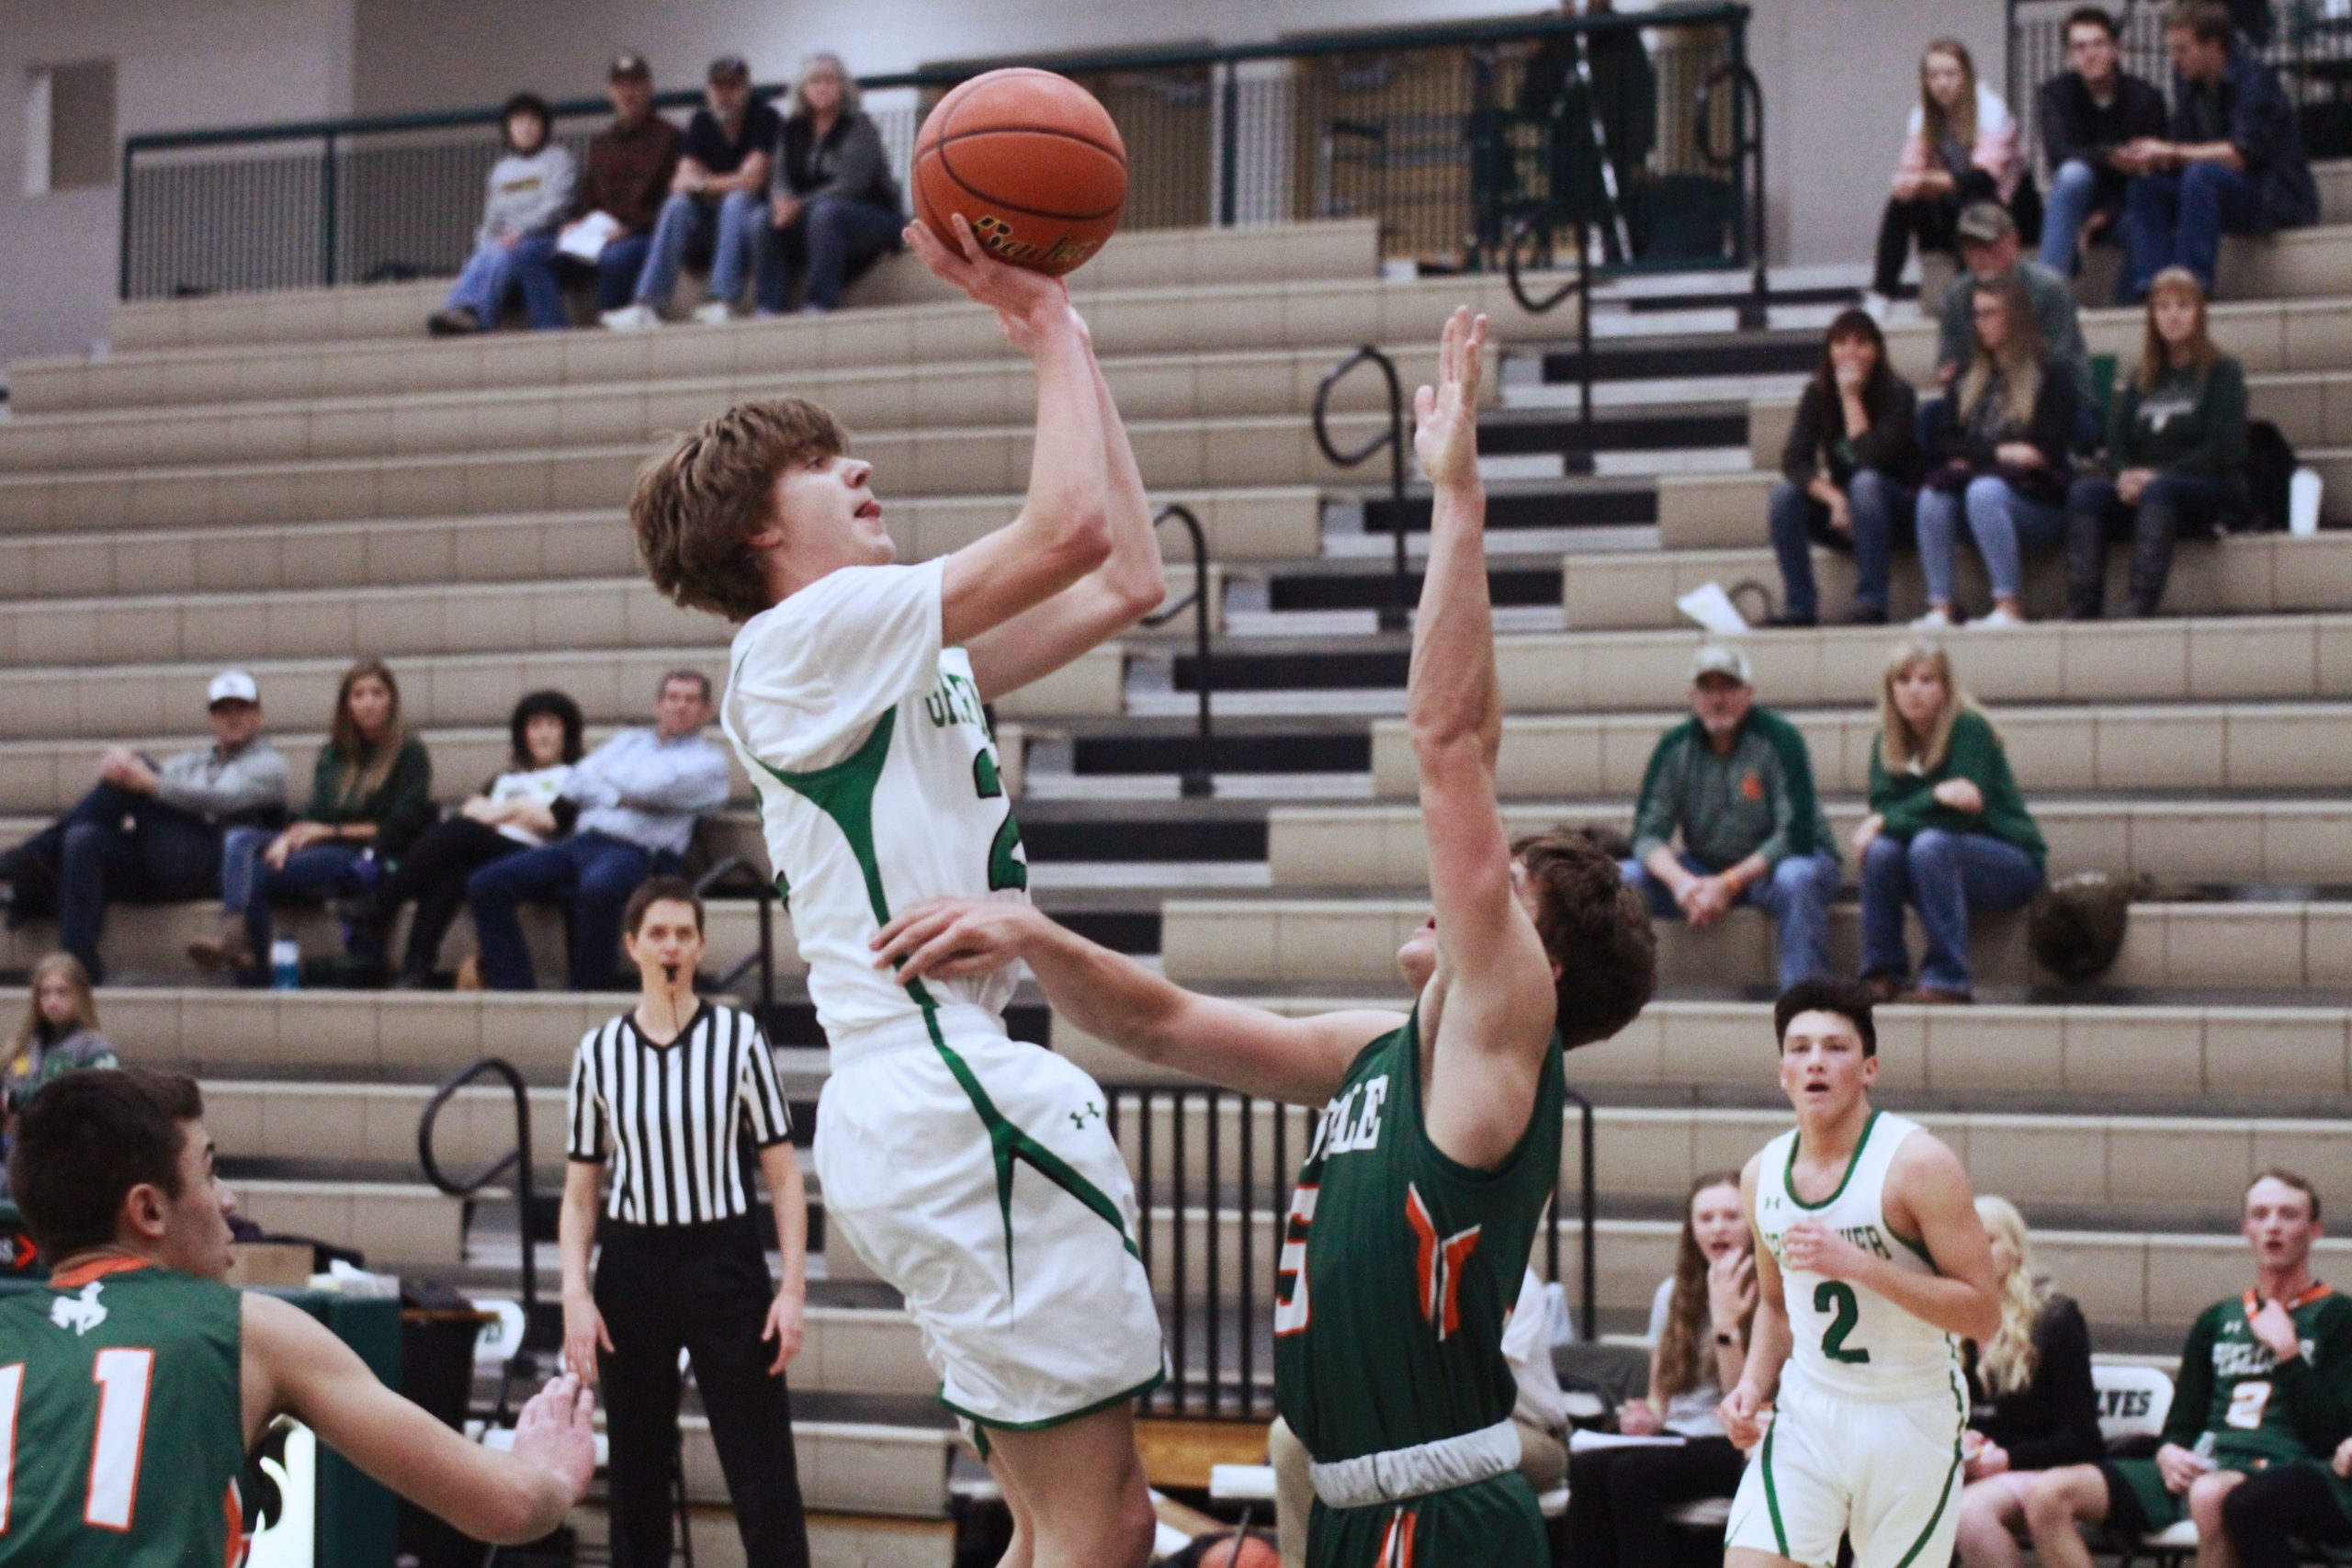 Flaming Gorge Classic: GRHS Basketball Photos, Scores and Commentary